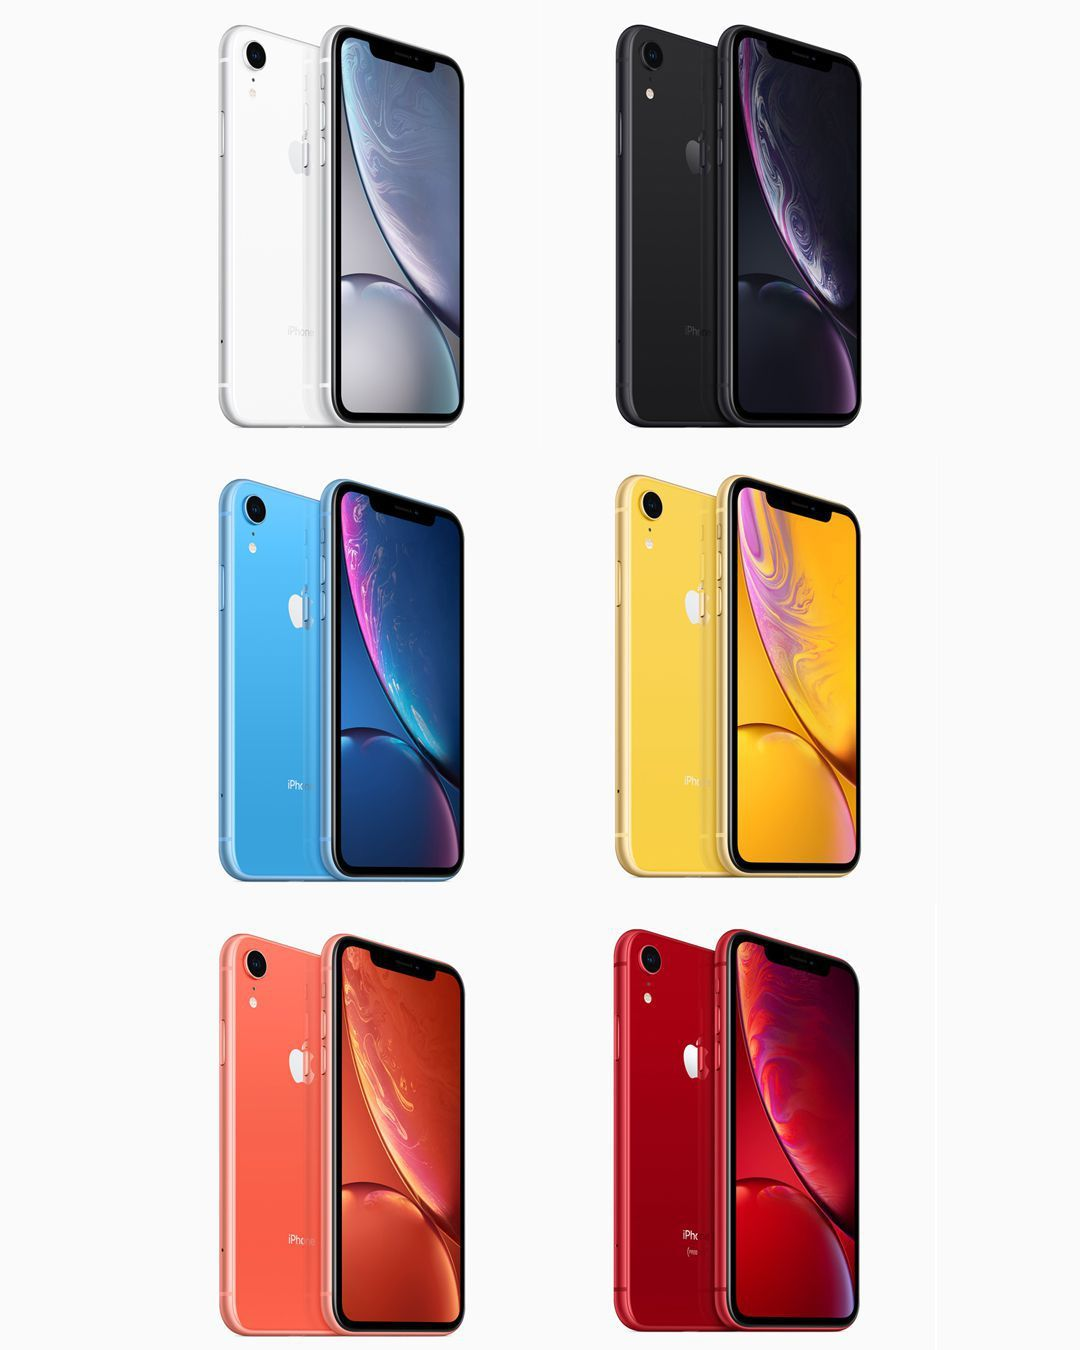 Pre Order Deals And Details For The Iphone Xs Xs Max And Xr Verizon At T T Mobile Walmart And More T Mobile Phones Apple Phone Iphone